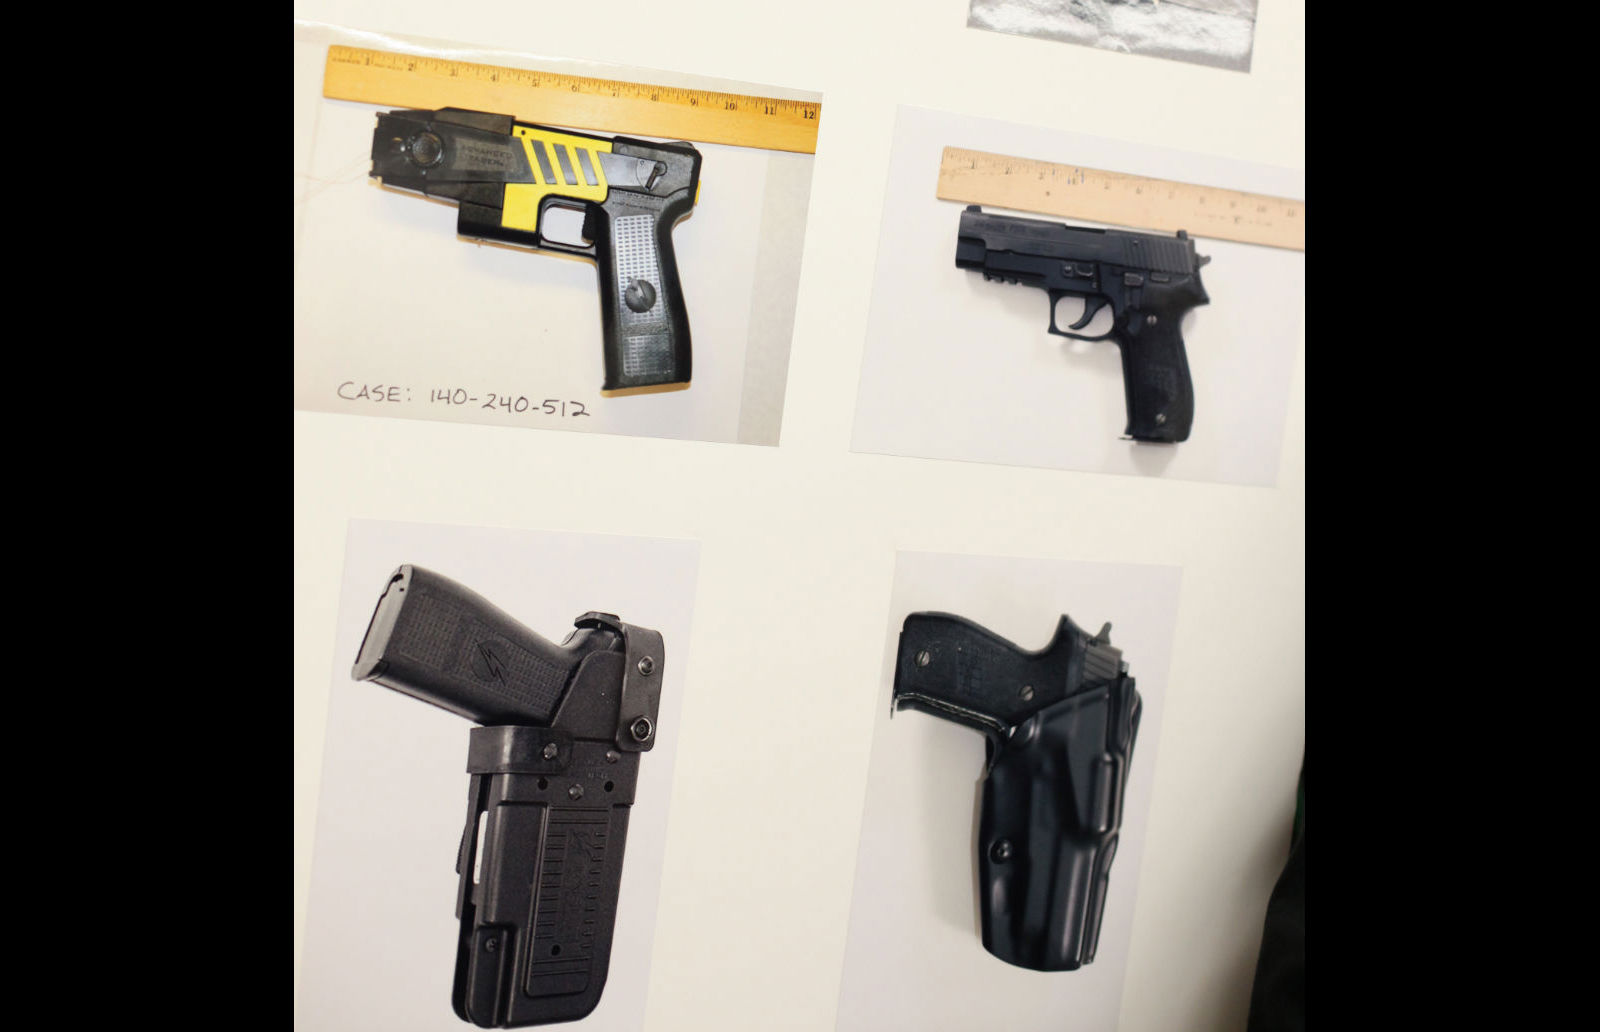 Side-by-side comparison created by SFPD of Taser gun (left column) and standard fire arm (right column) presented during March 2014 community meeting.